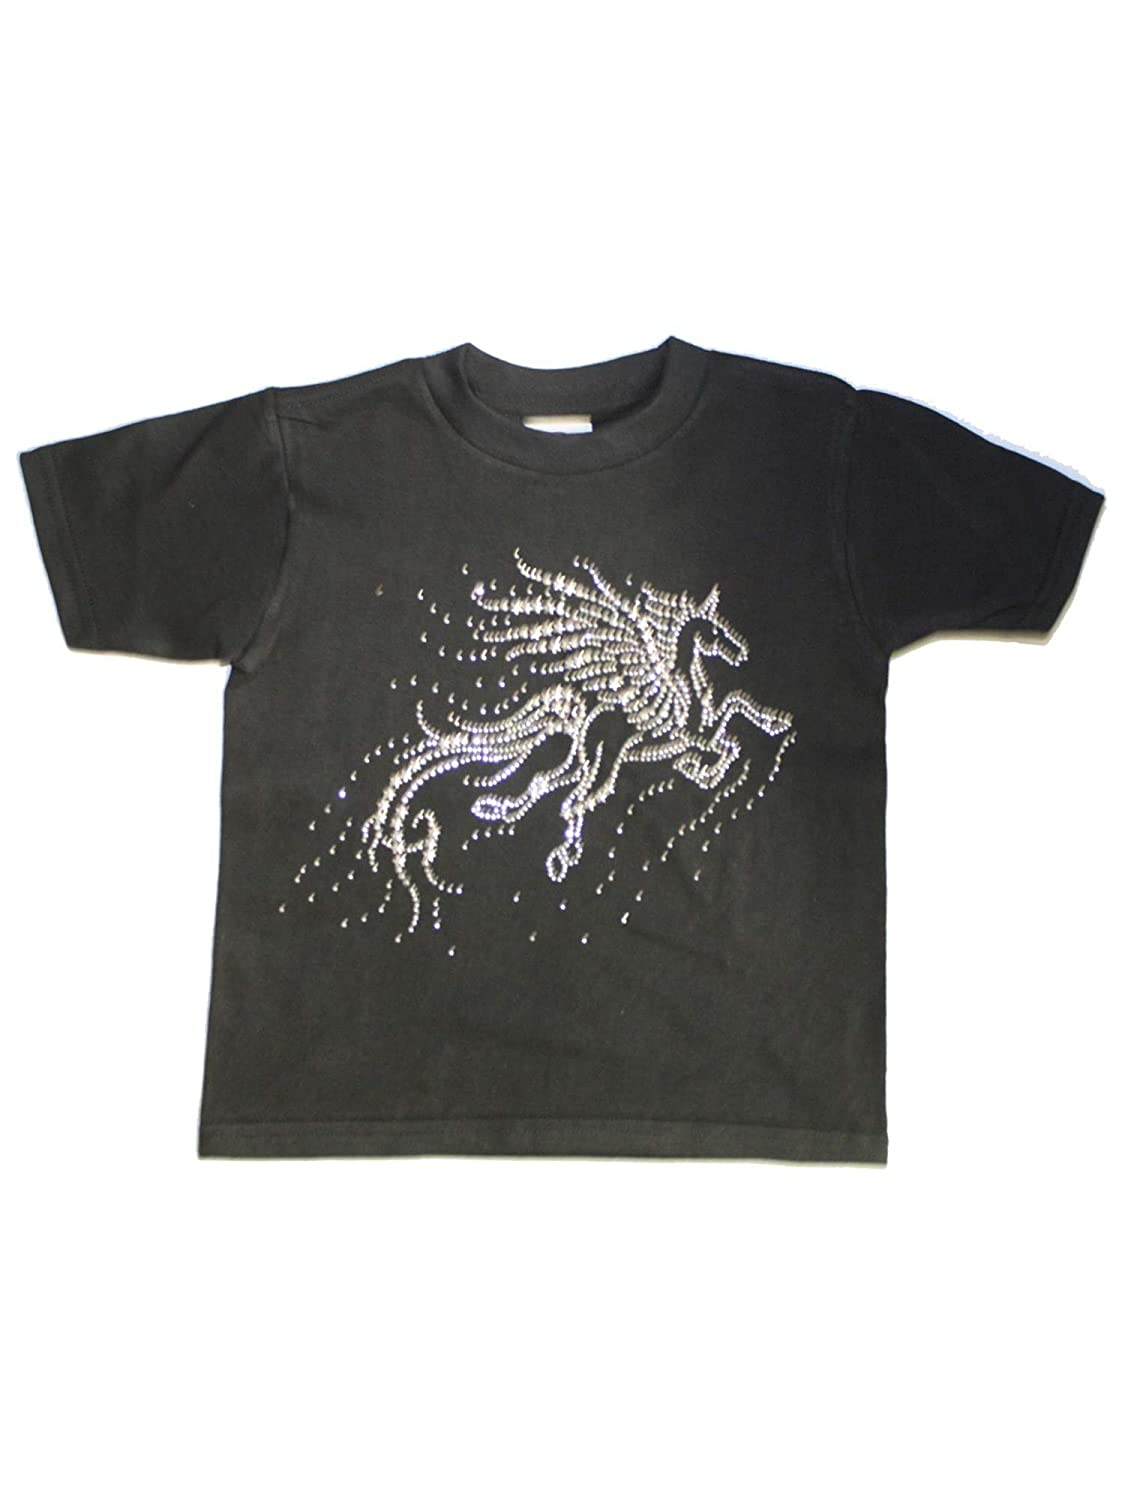 Unisex Little Kids Black Flying Unicorn Short Sleeve Cotton T-Shirt 2T-5